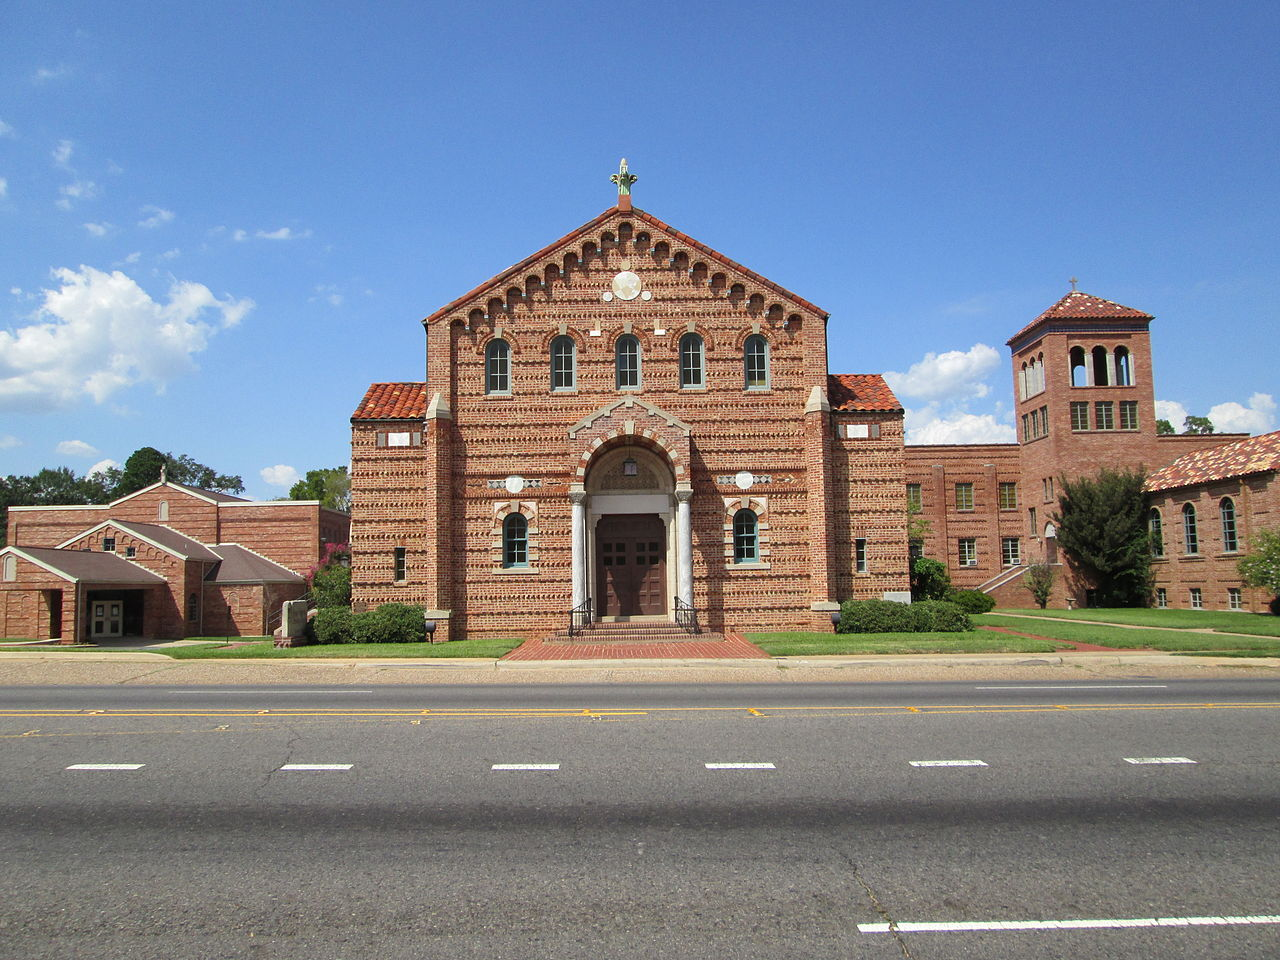 Kings Highway Christian Church features intricate brickwork, making it one of the most beautiful building in Shreveport.